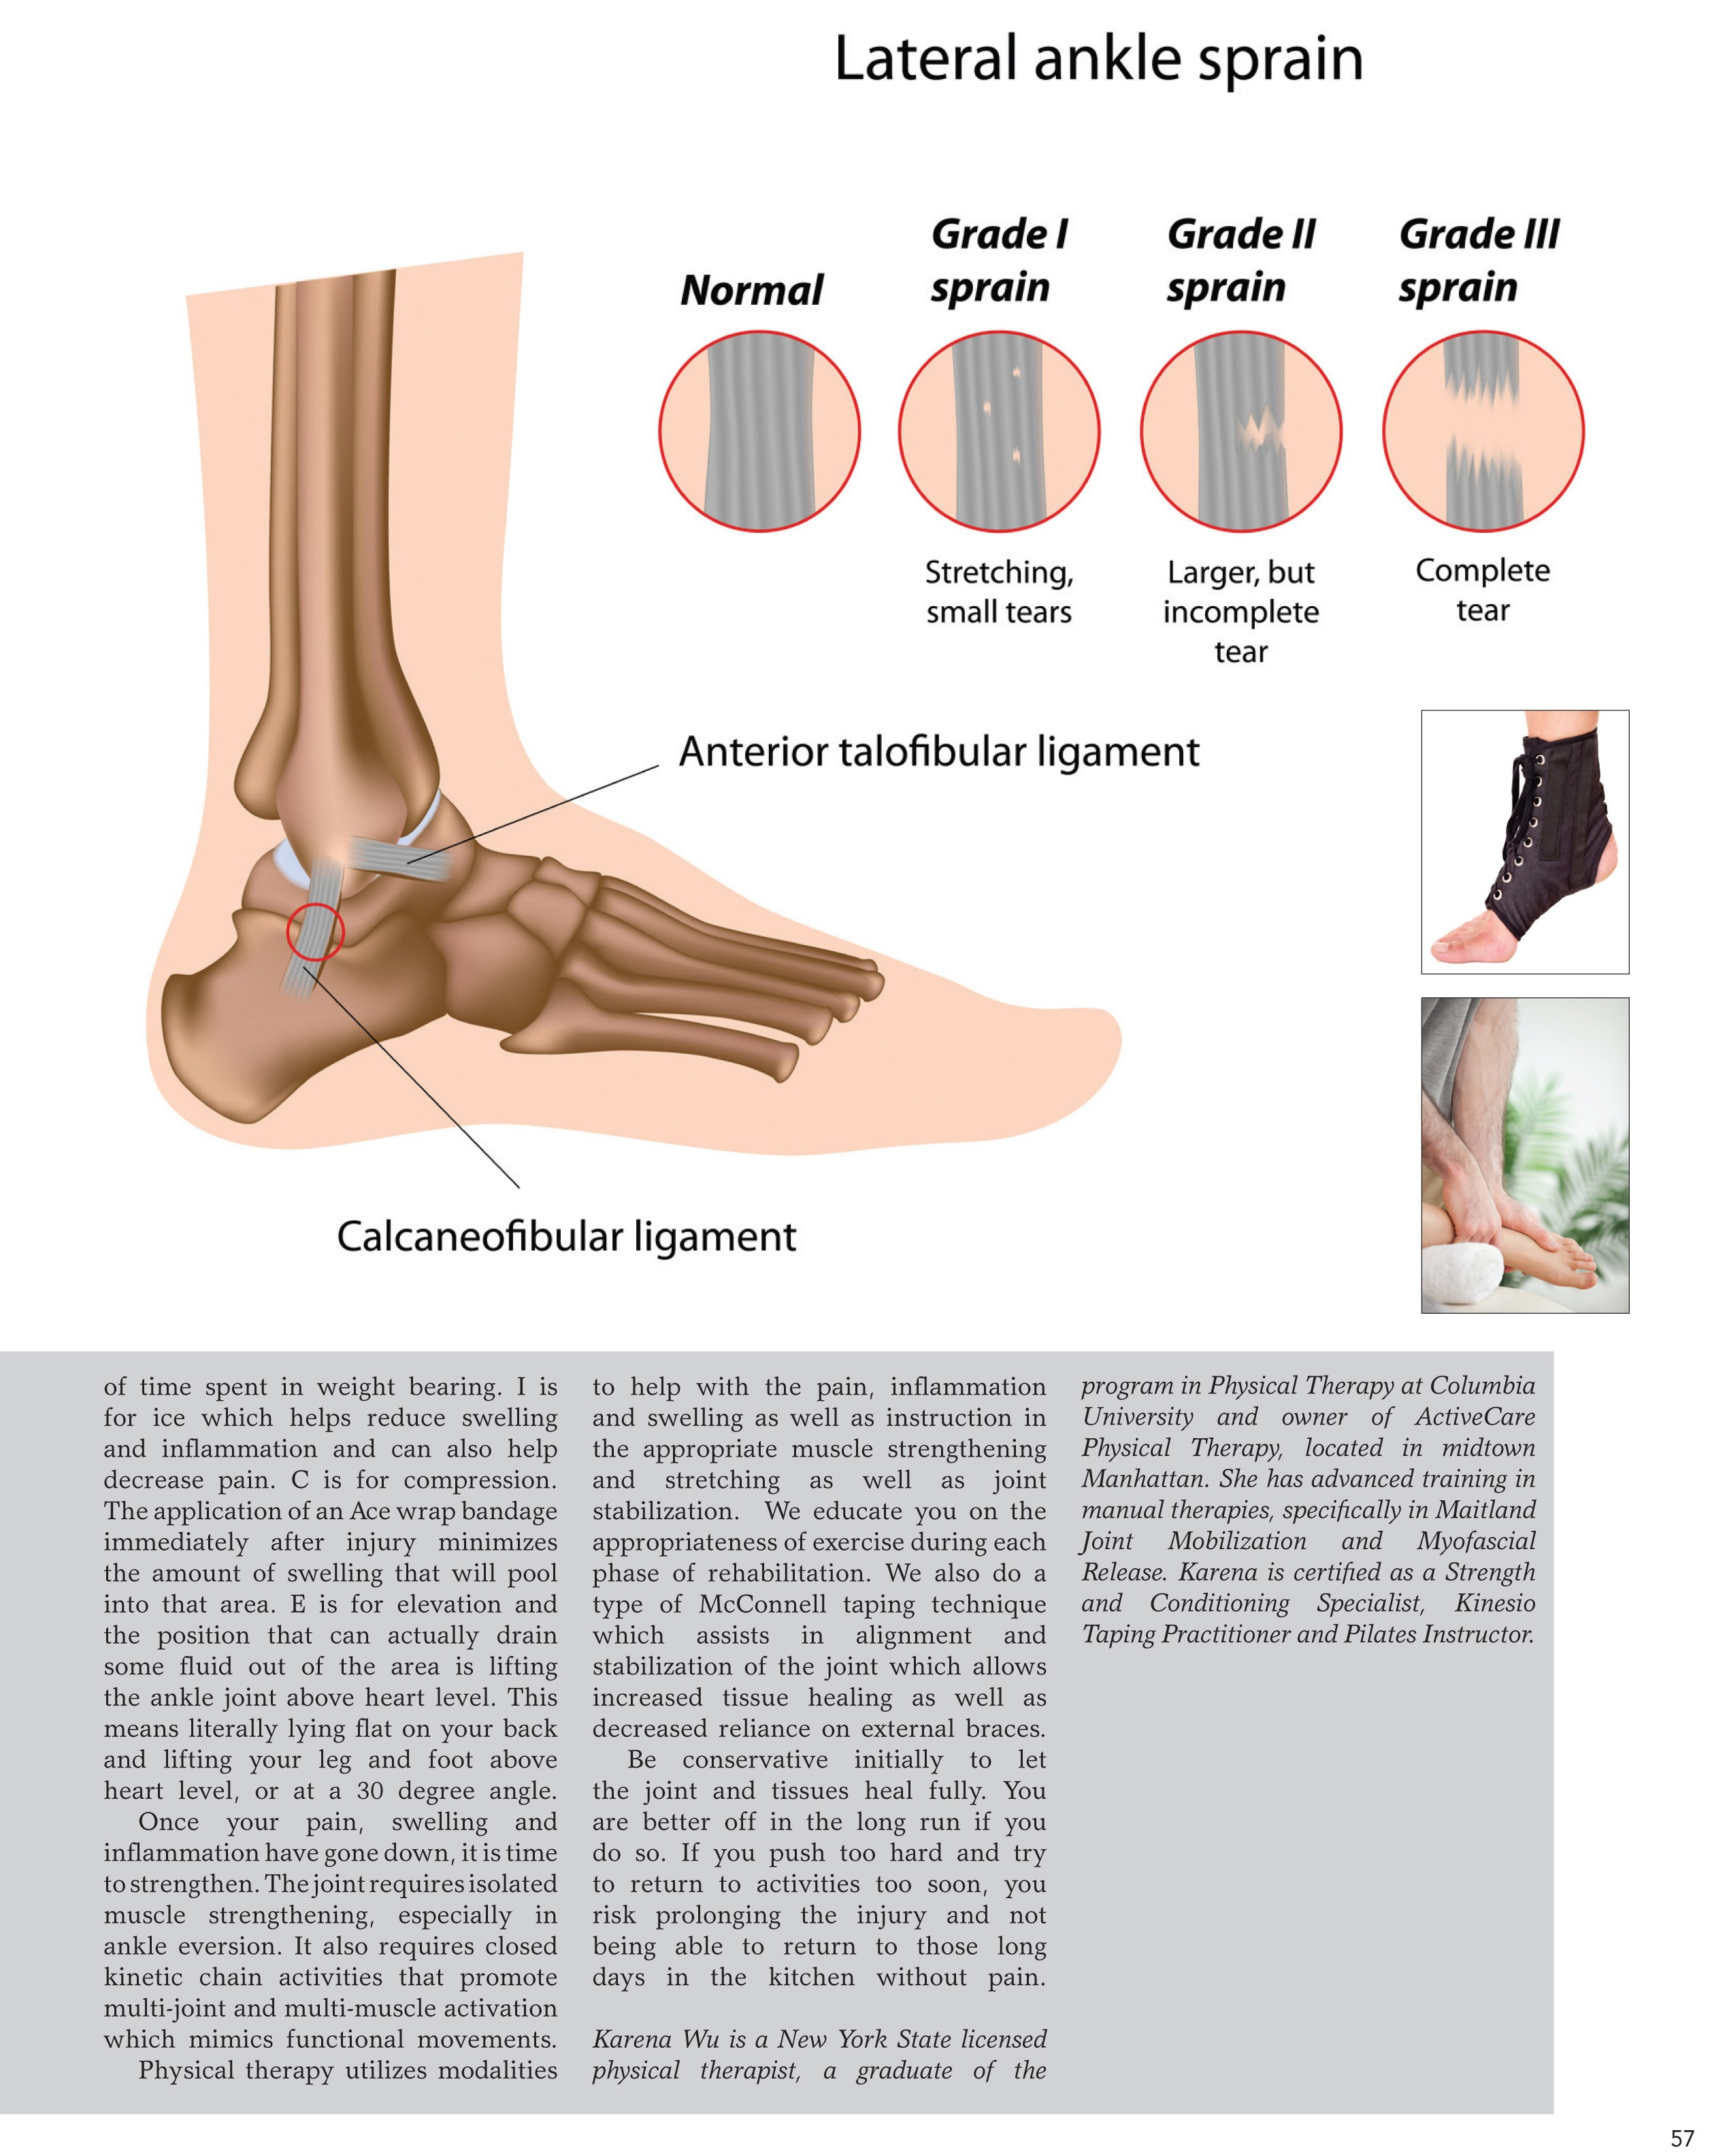 Ankle sprain physical therapy - Kithercize 12 12 Indd